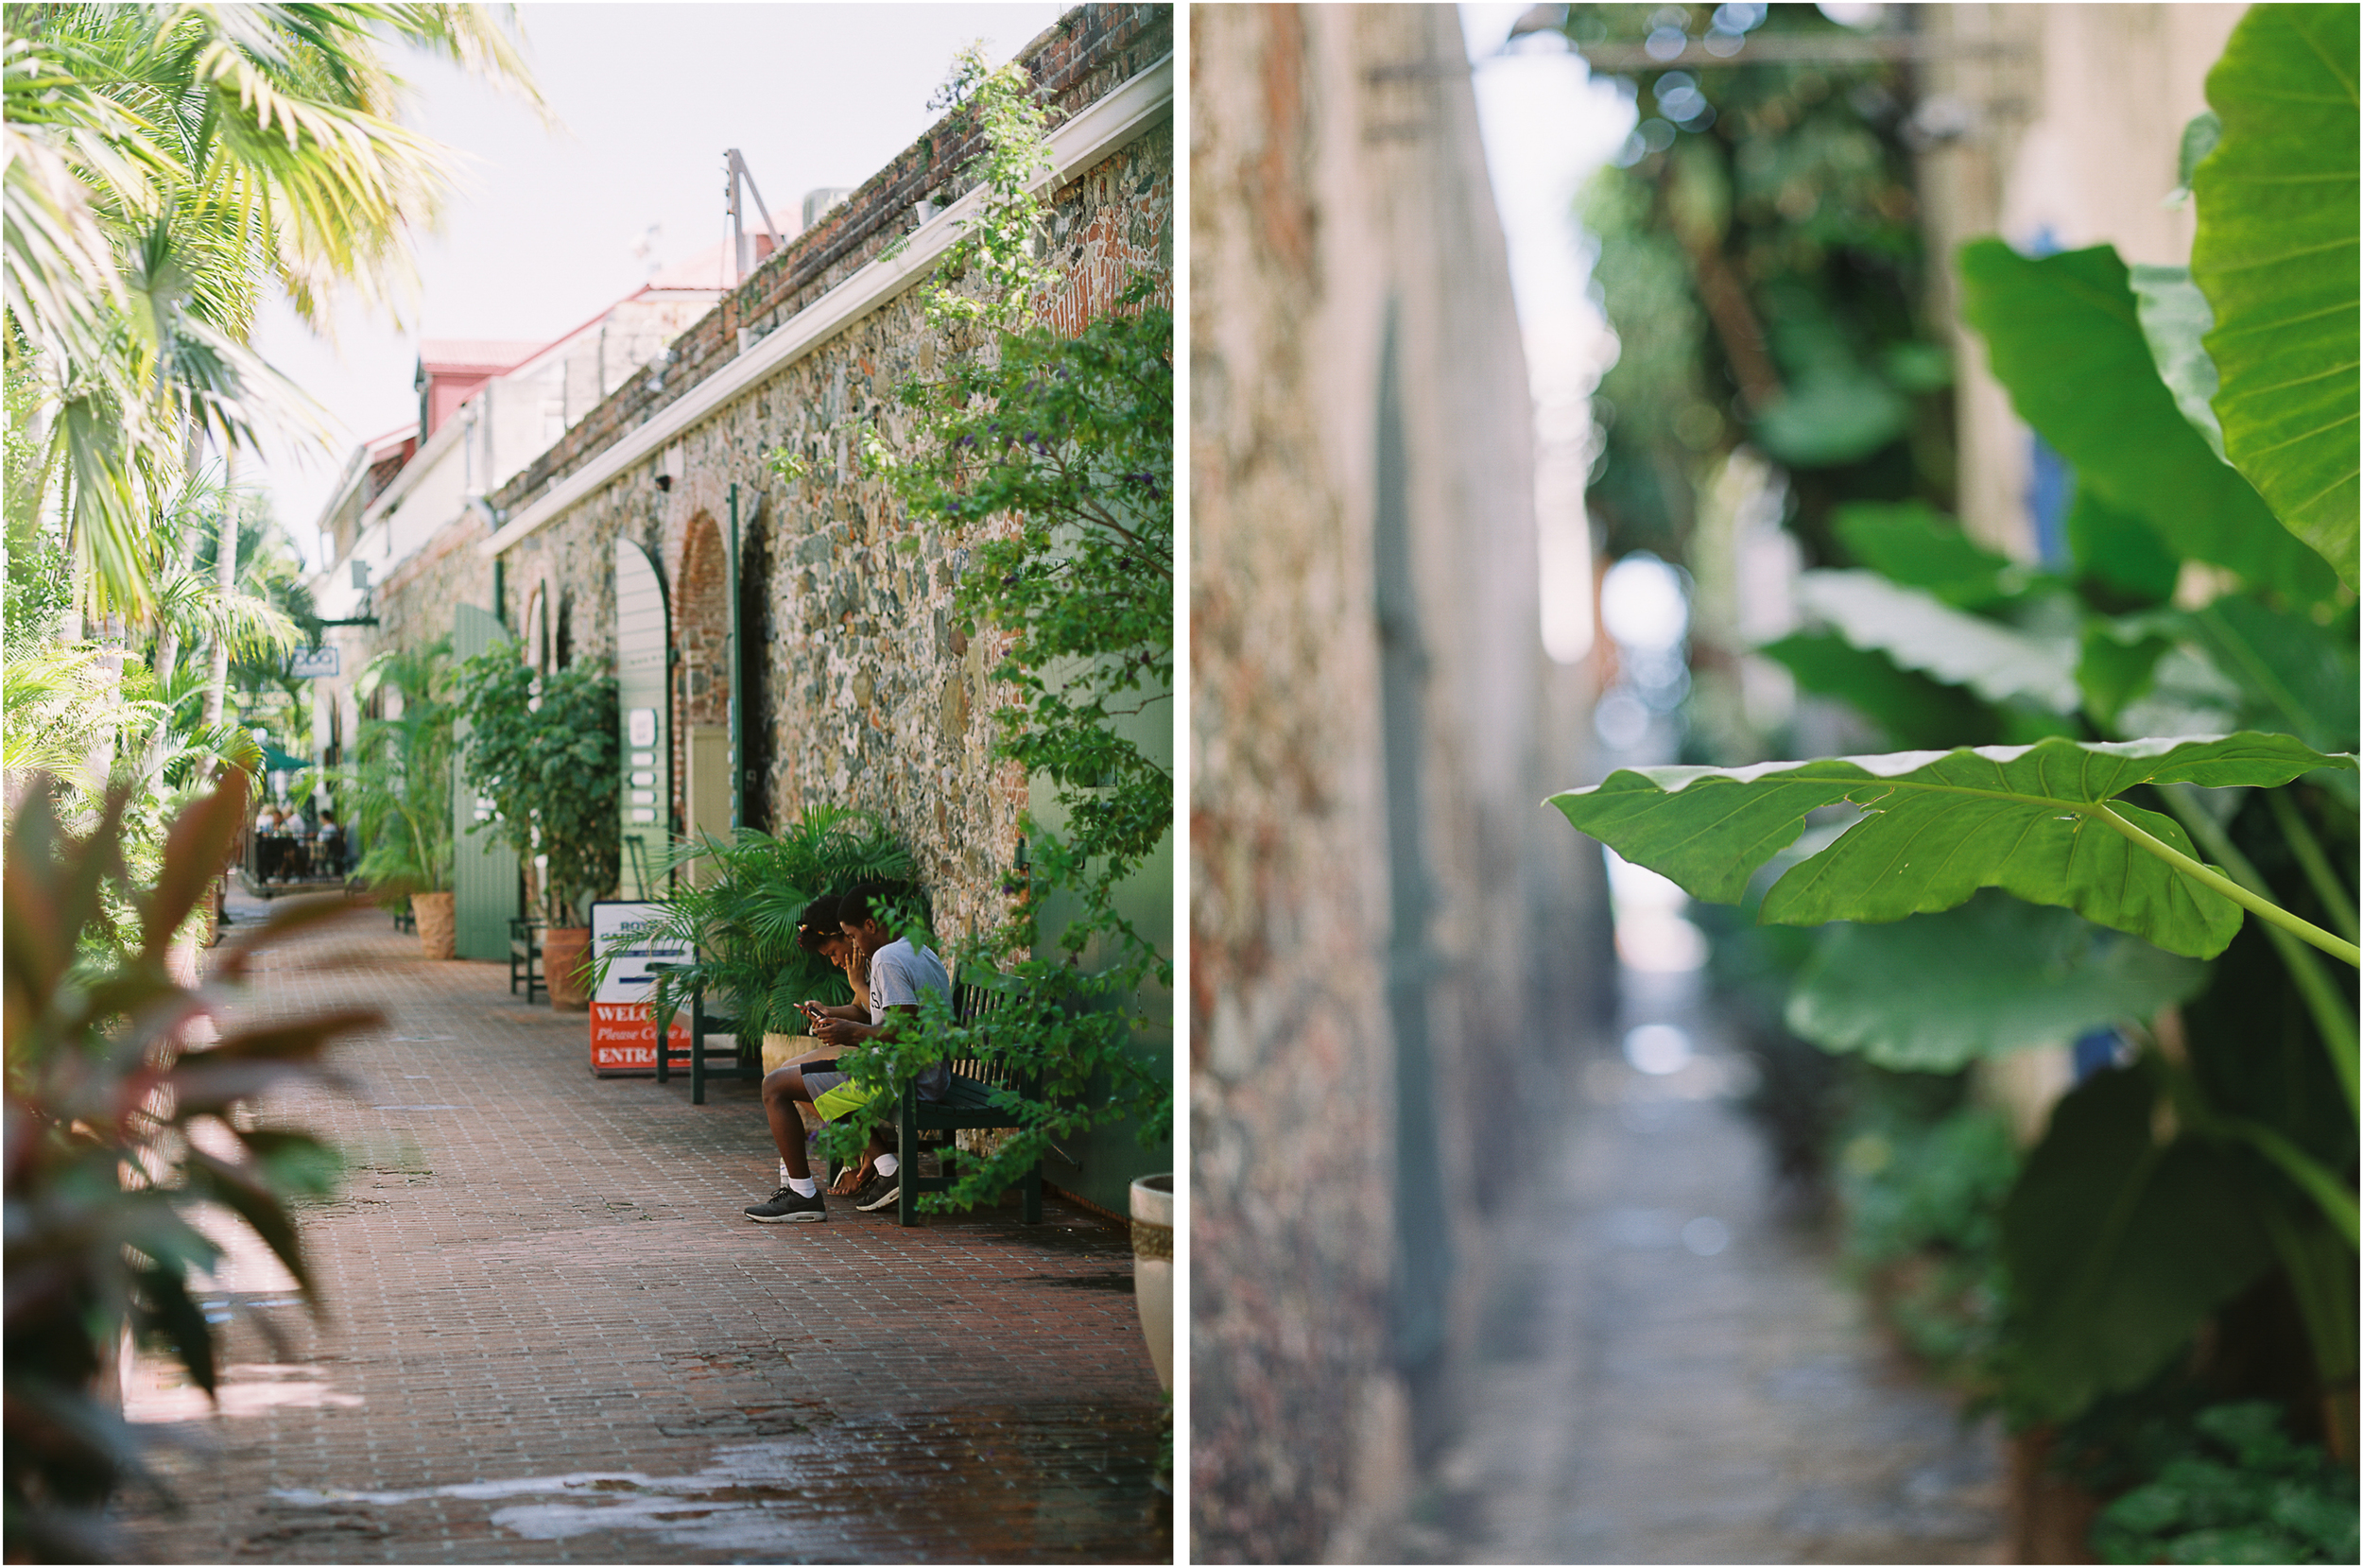 St. Thomas, charolette amelia USVI traveling photographer